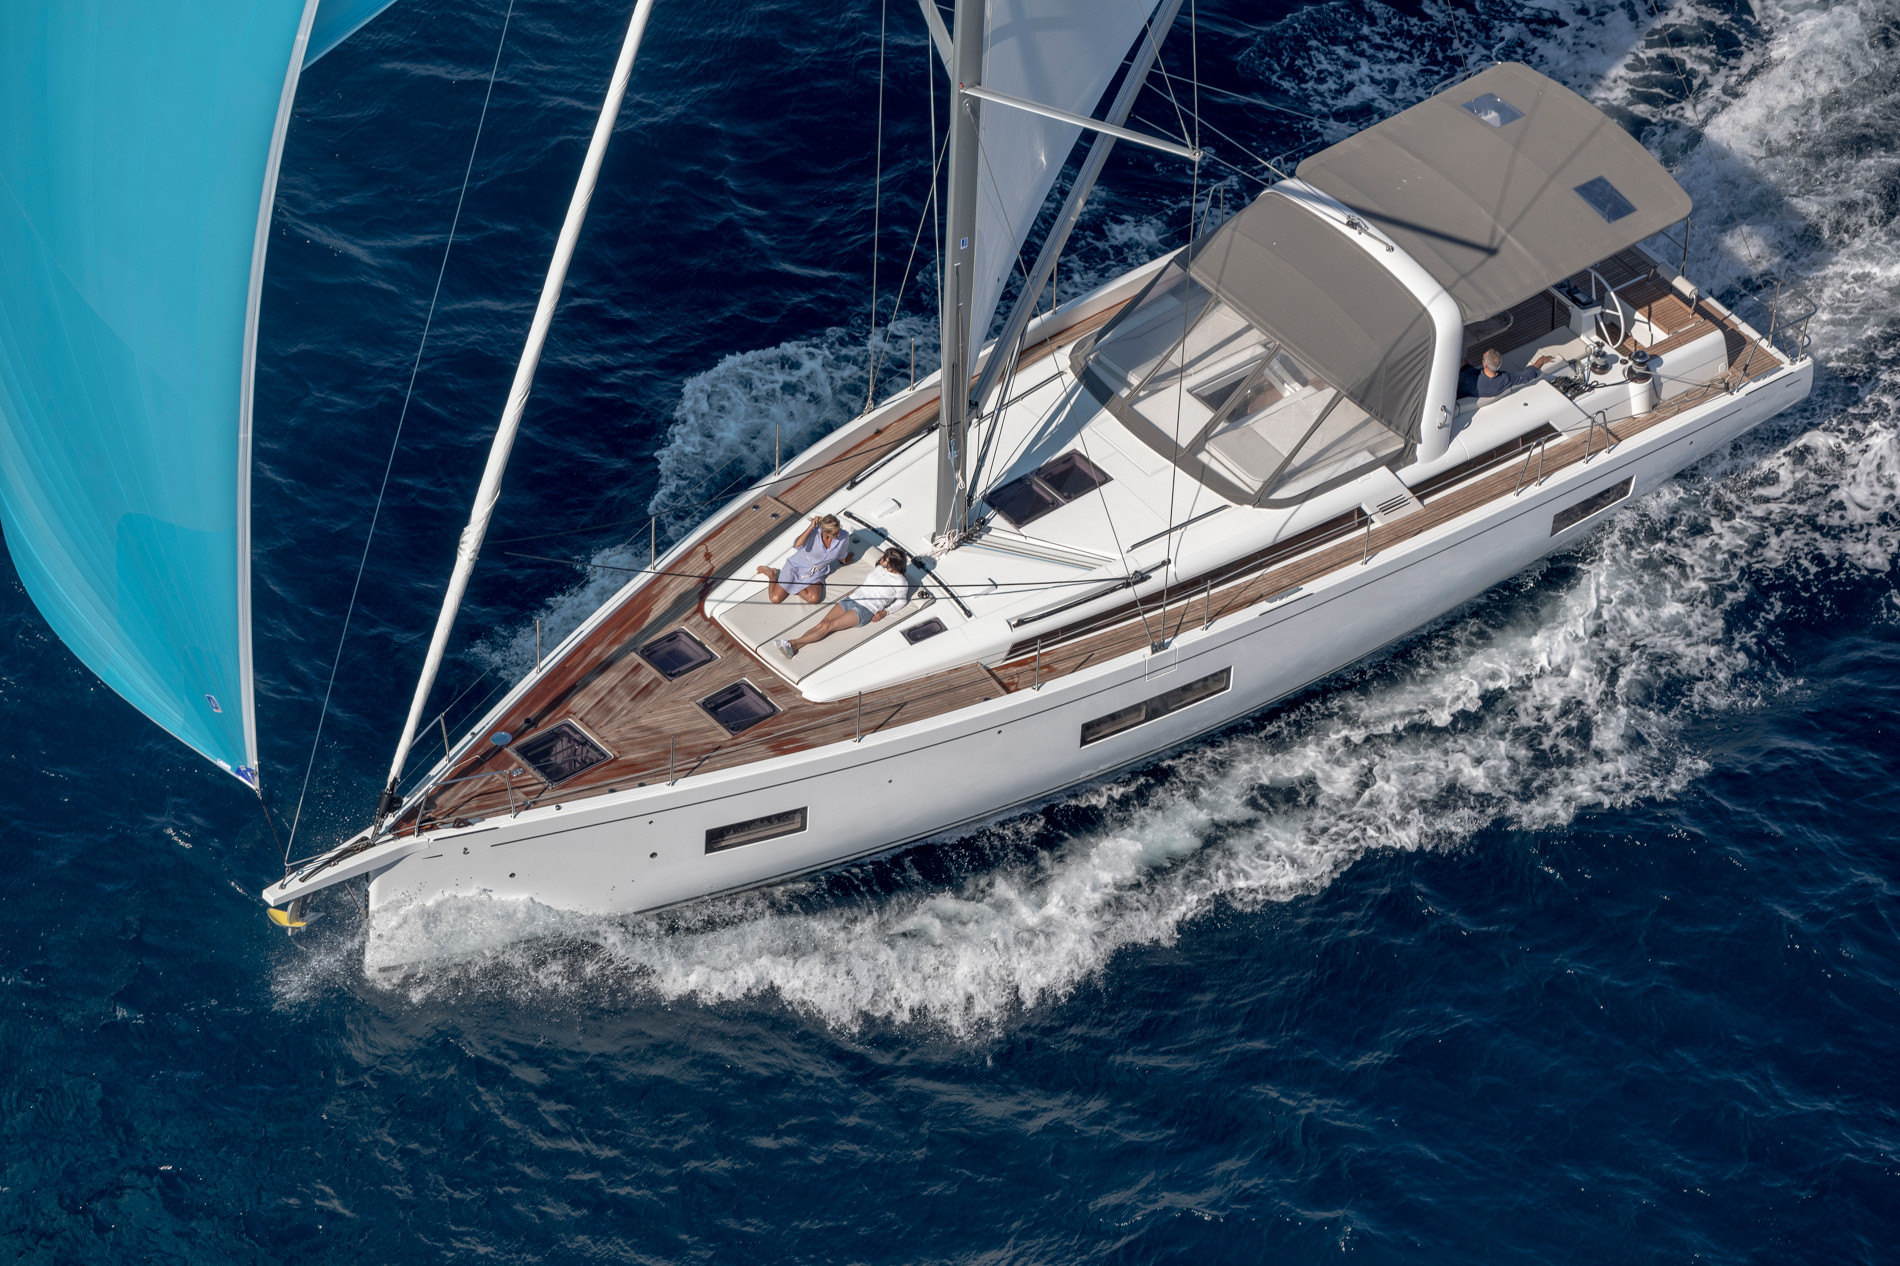 Beneteau Oceanis Yacht 54 — Welcome to a New Generation